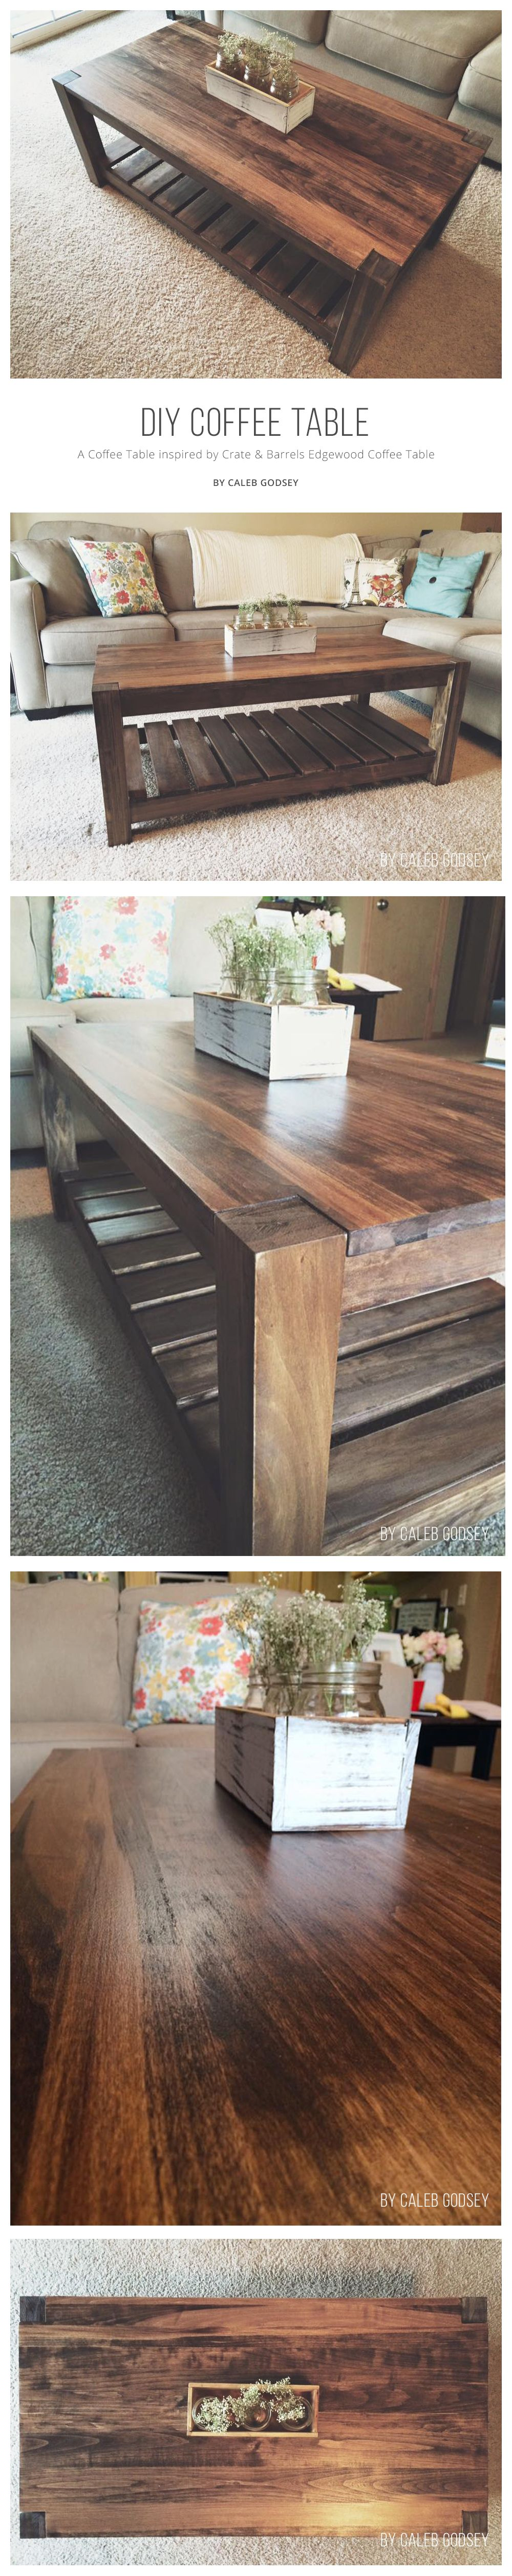 15 Easy DIY Reclaimed Wood Projects